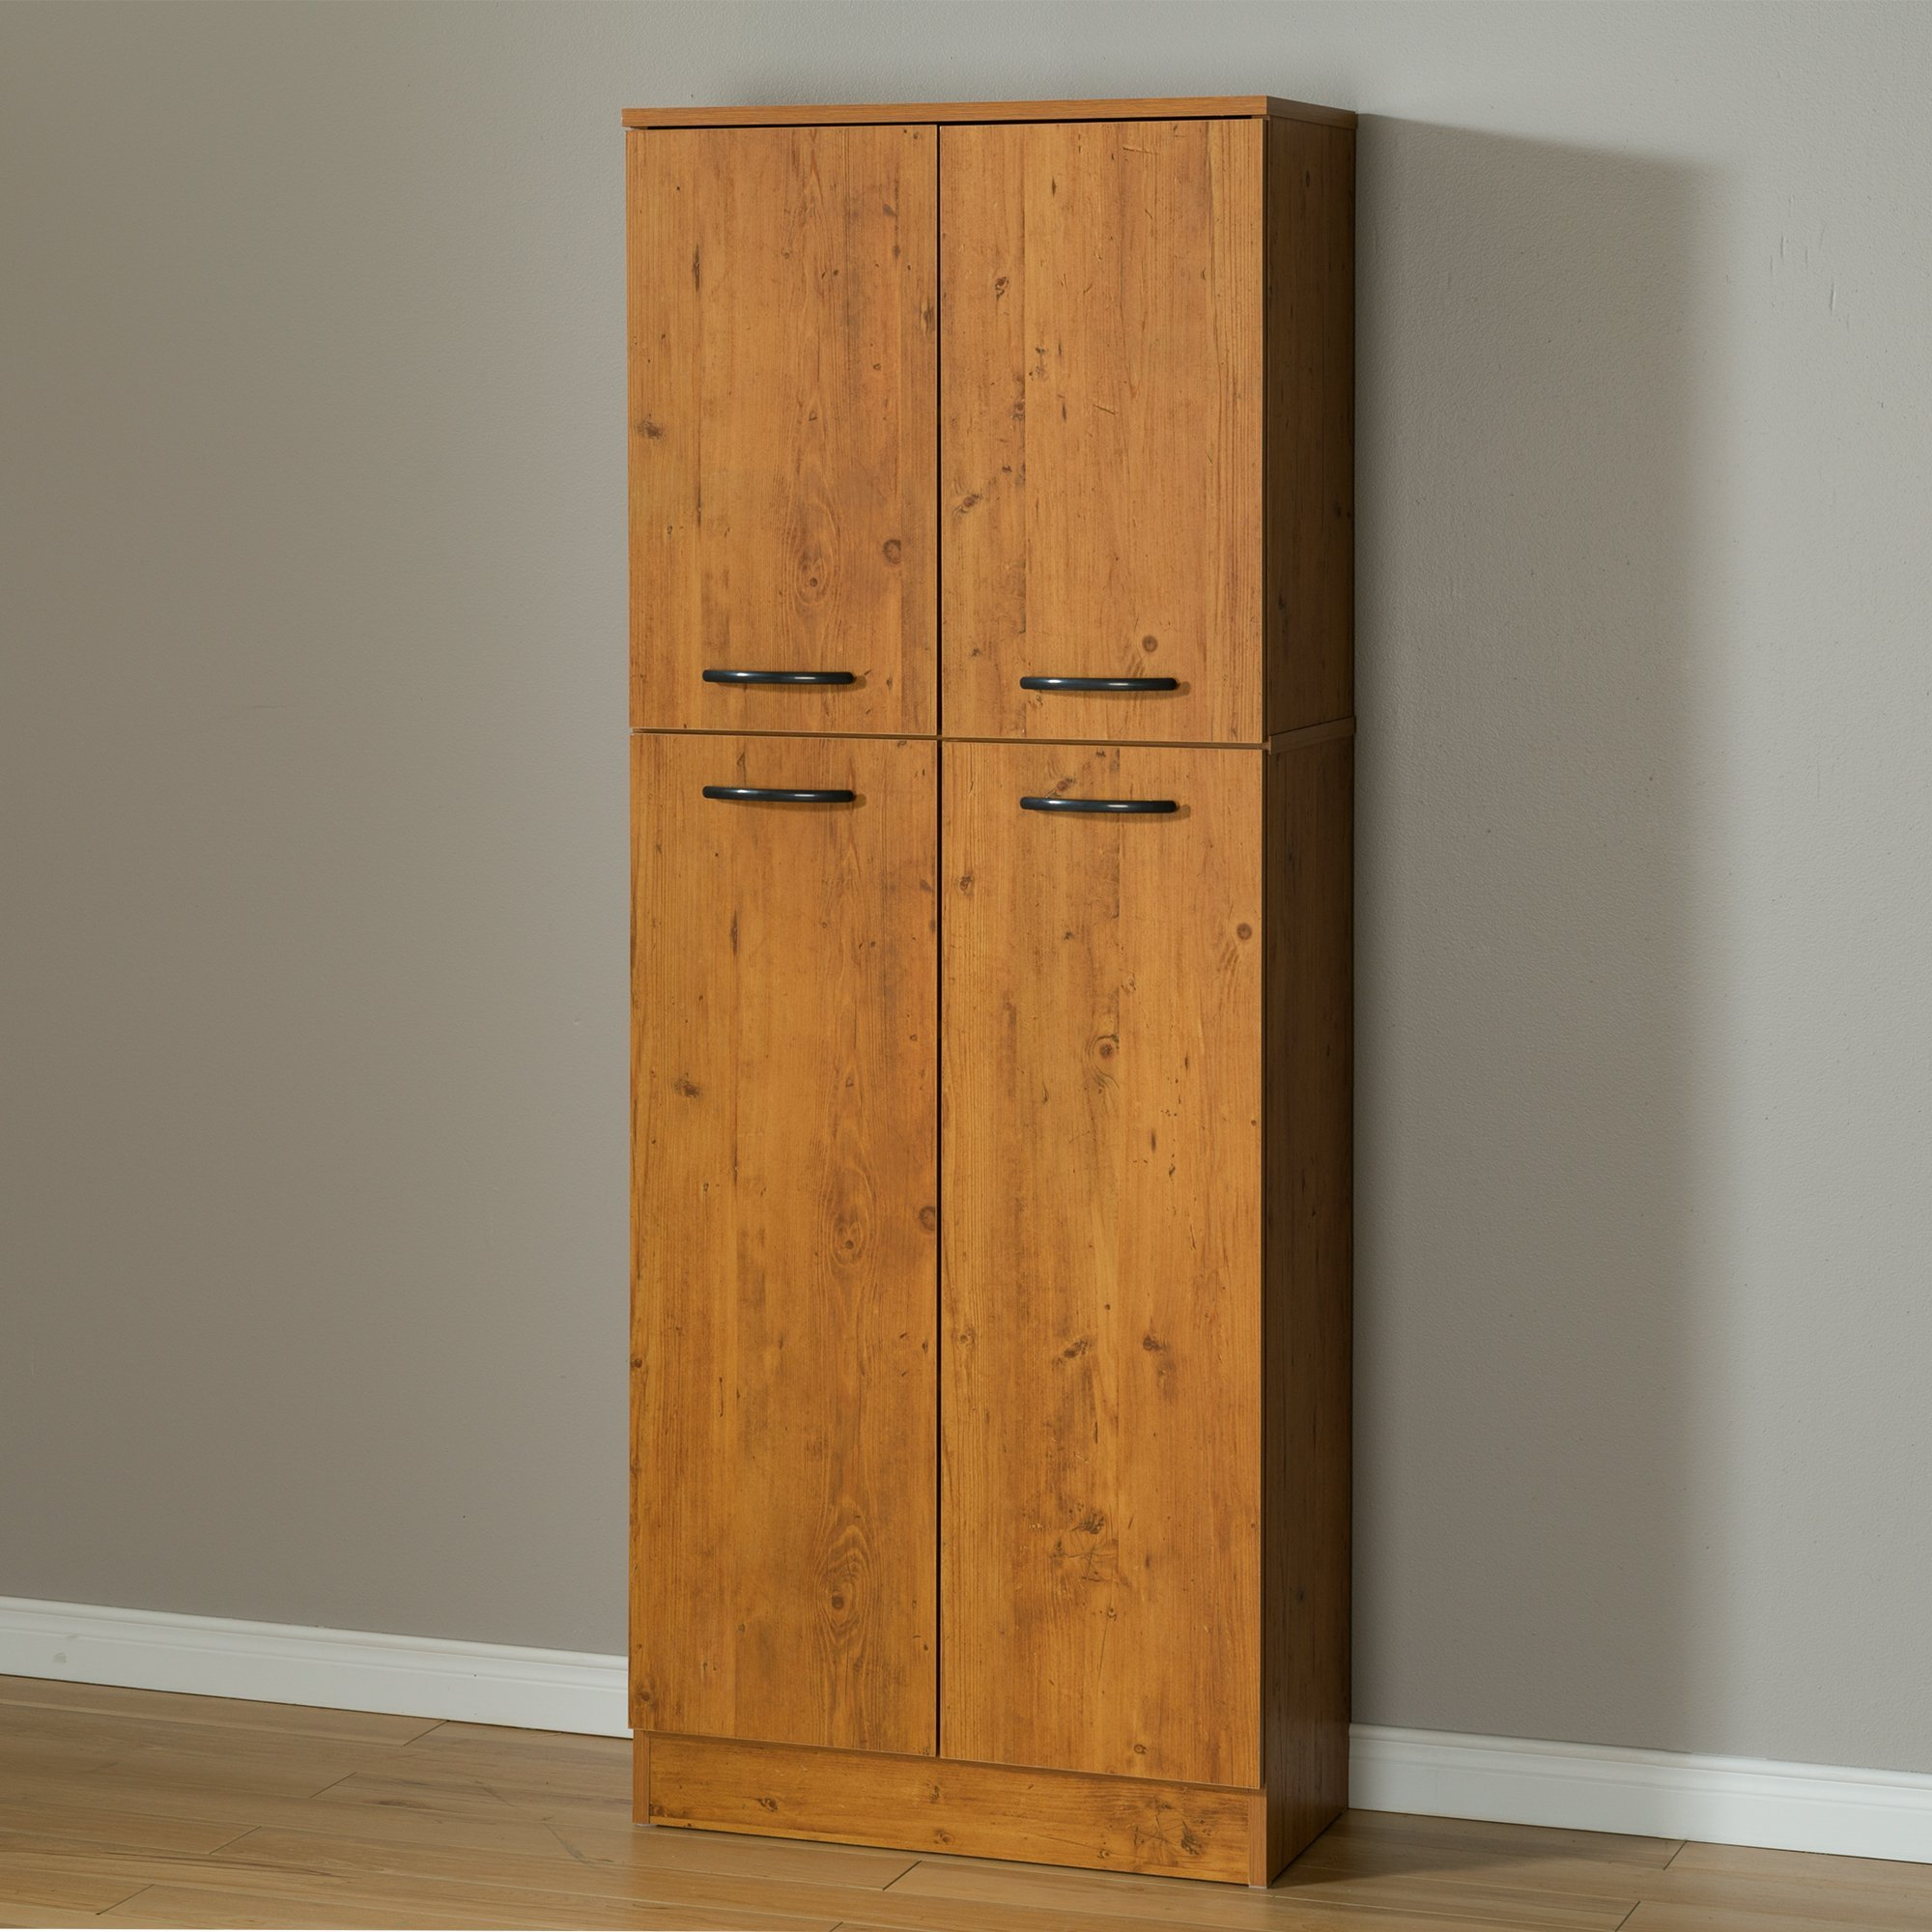 South Shore Axess 4-Shelf Pantry Storage, Country Pine by South Shore (Image #10)